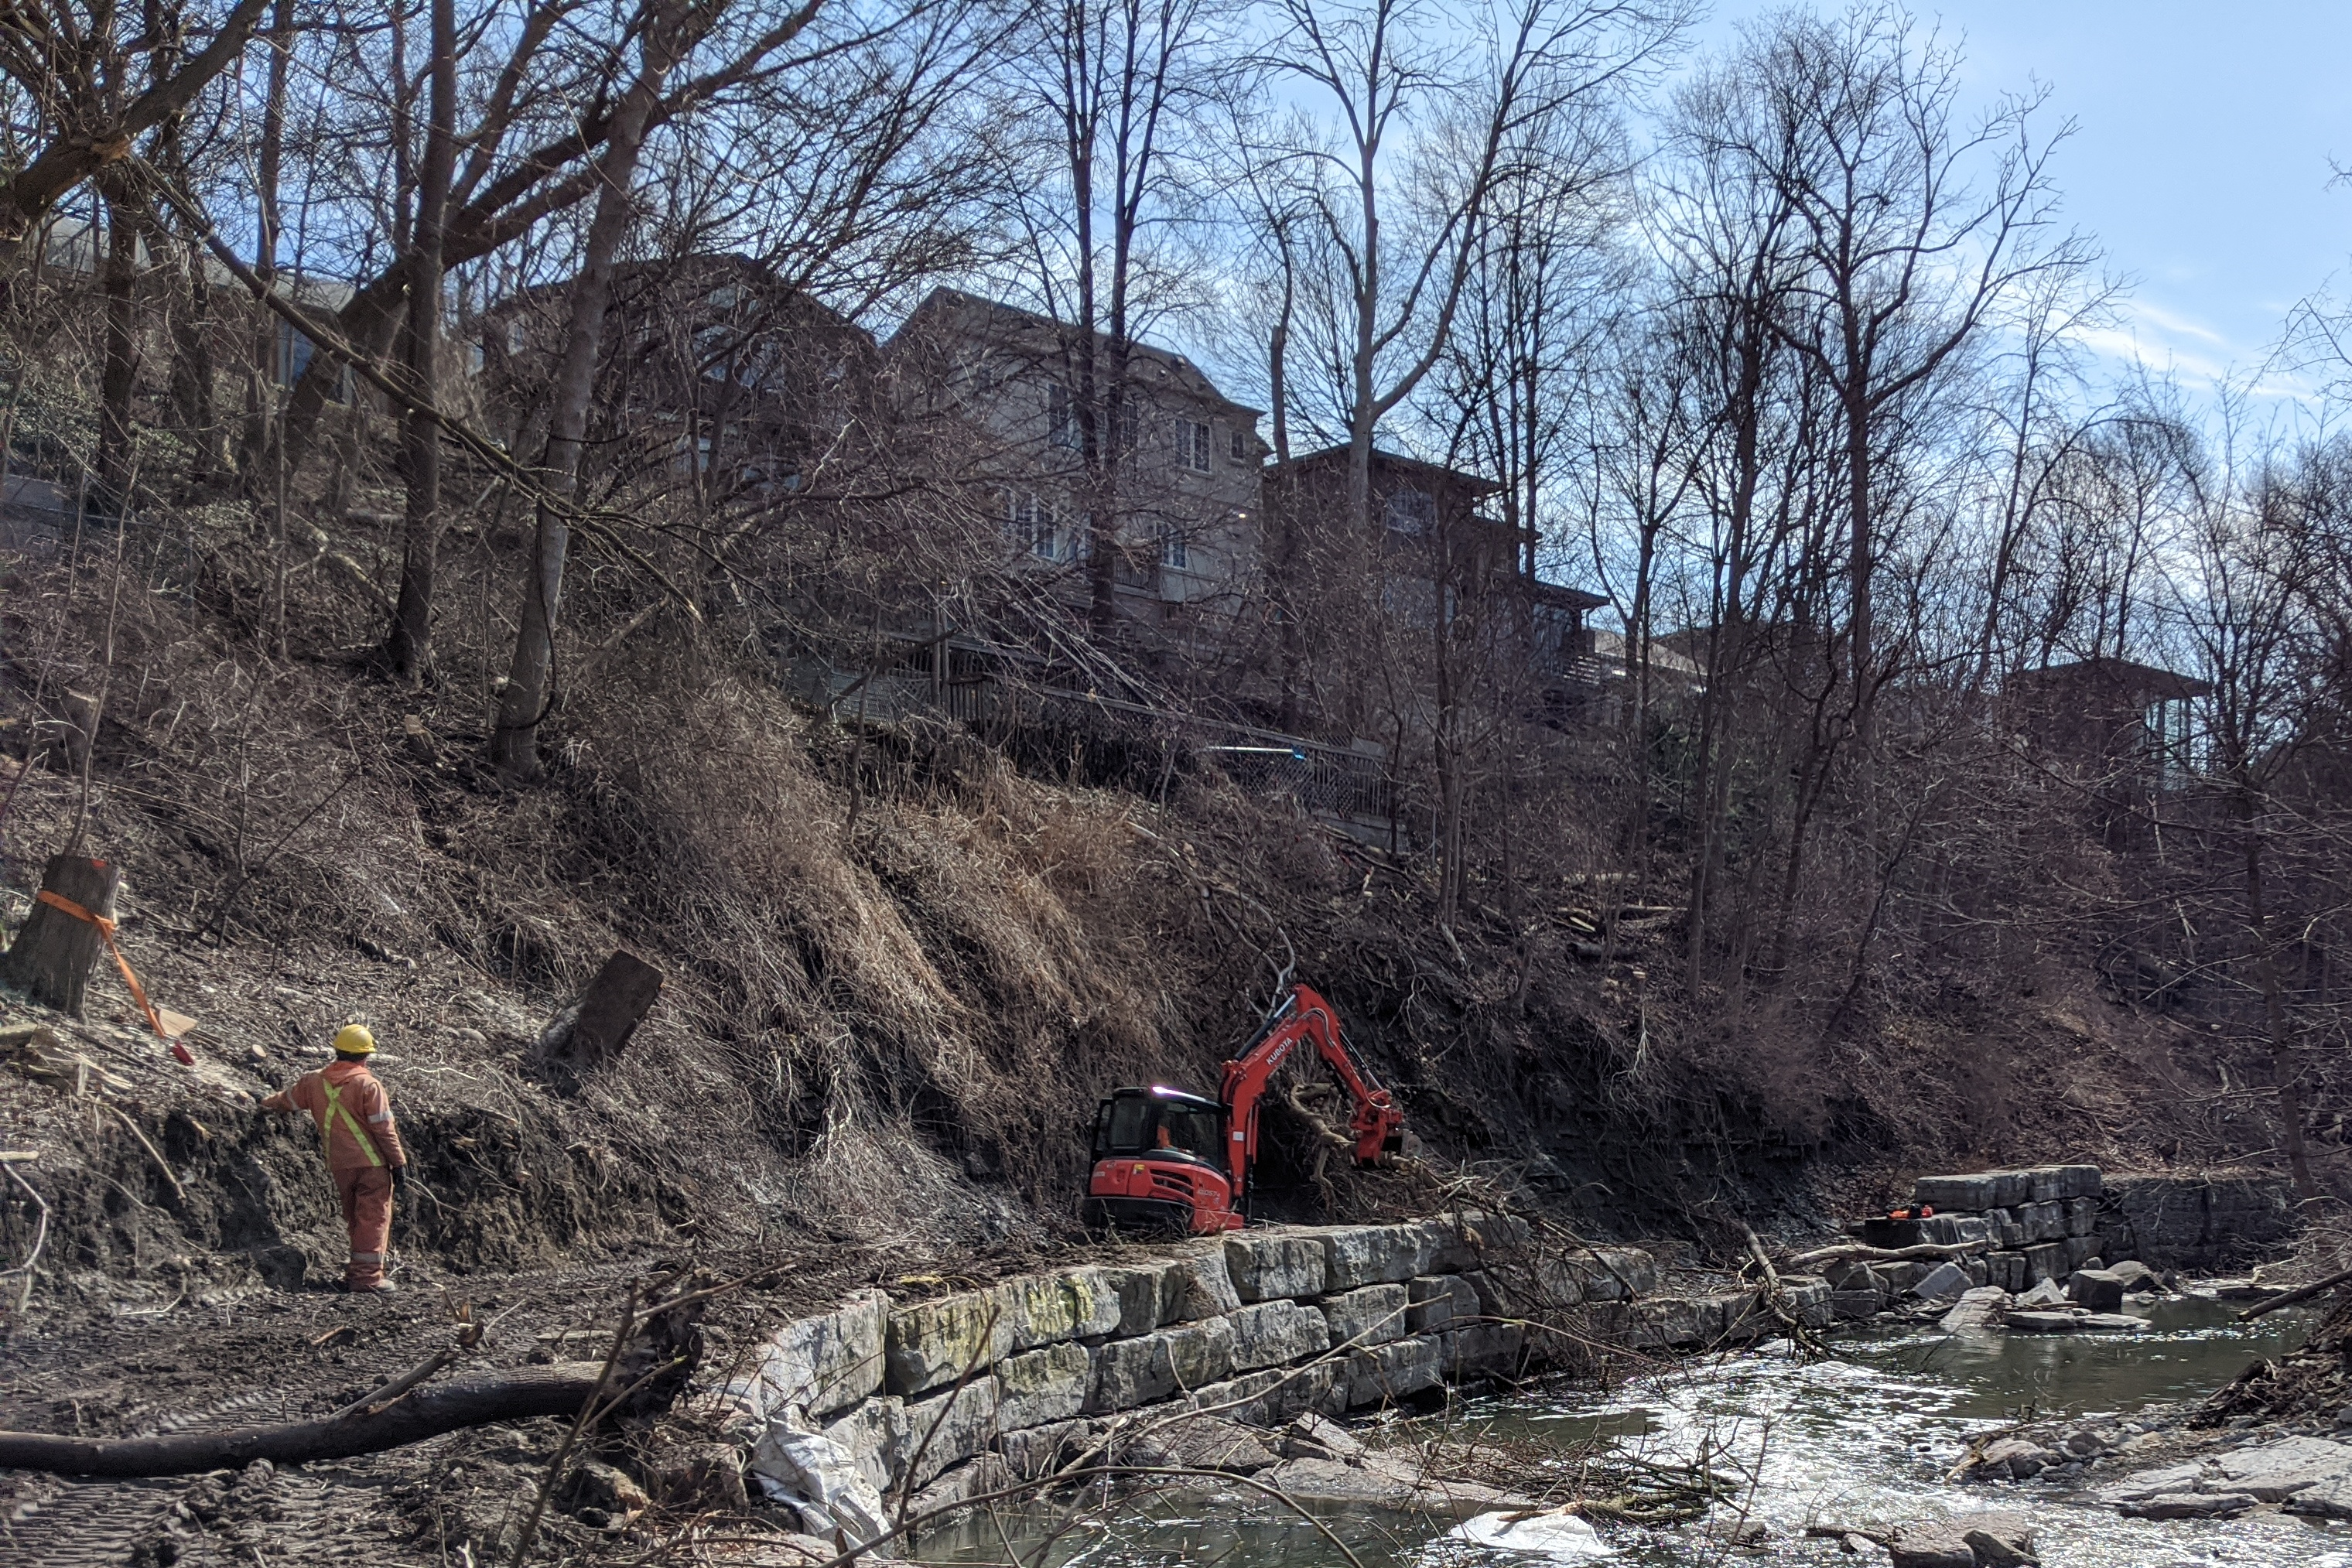 Workers removing felled trees from a construction site alongside Mimico Creek